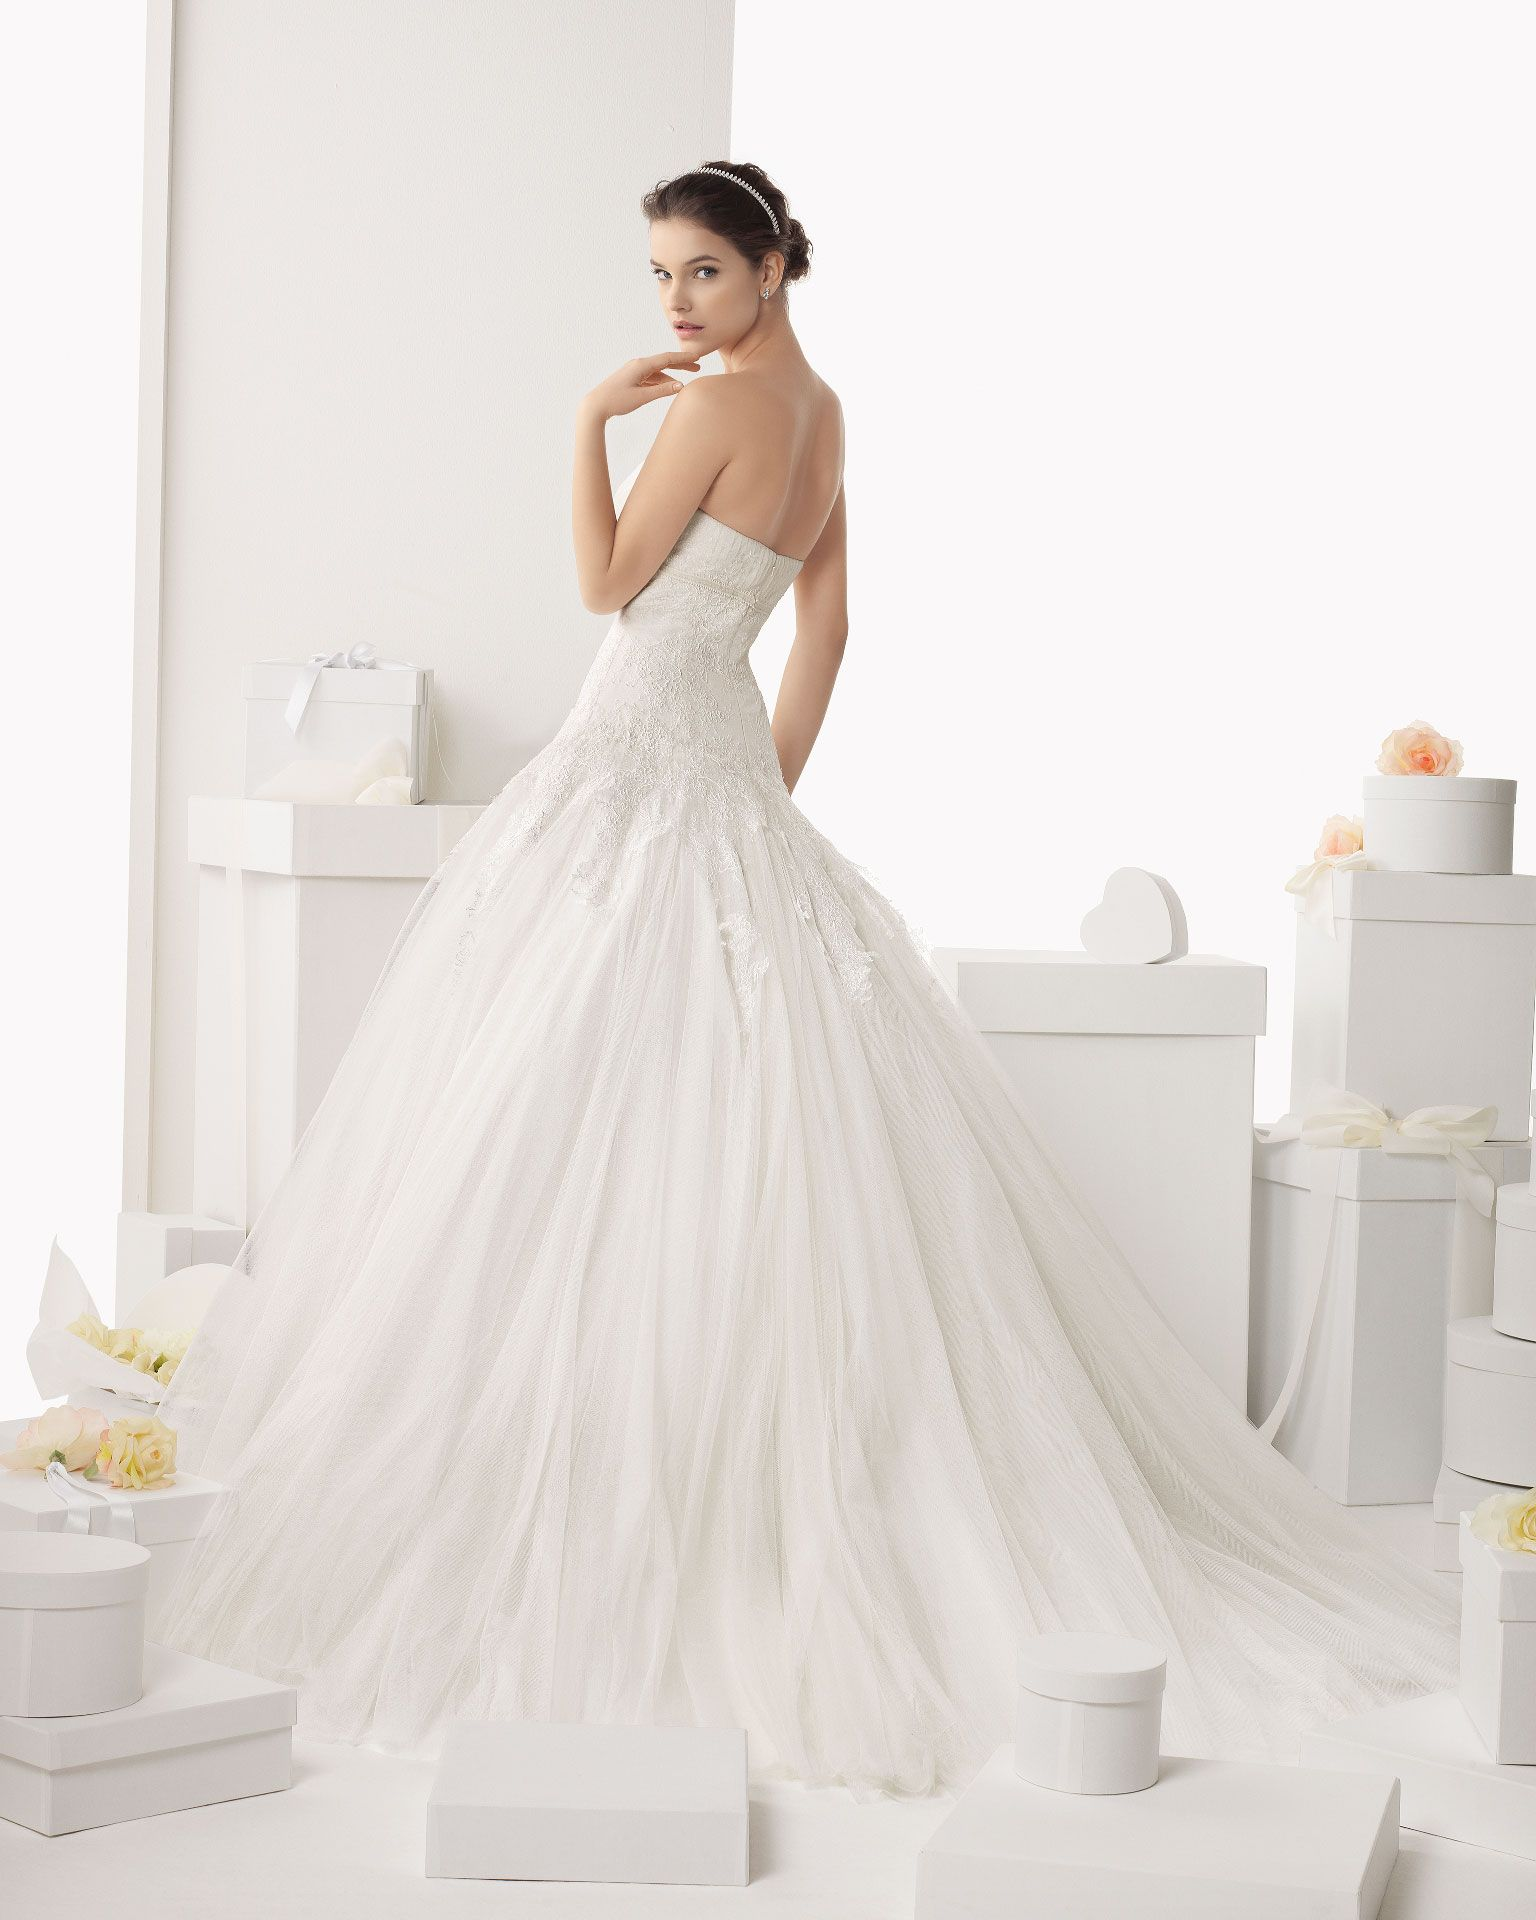 Dress with jacket for wedding   CALAFELL  Wedding Dresses   Rosa Clara Collection  Rosa